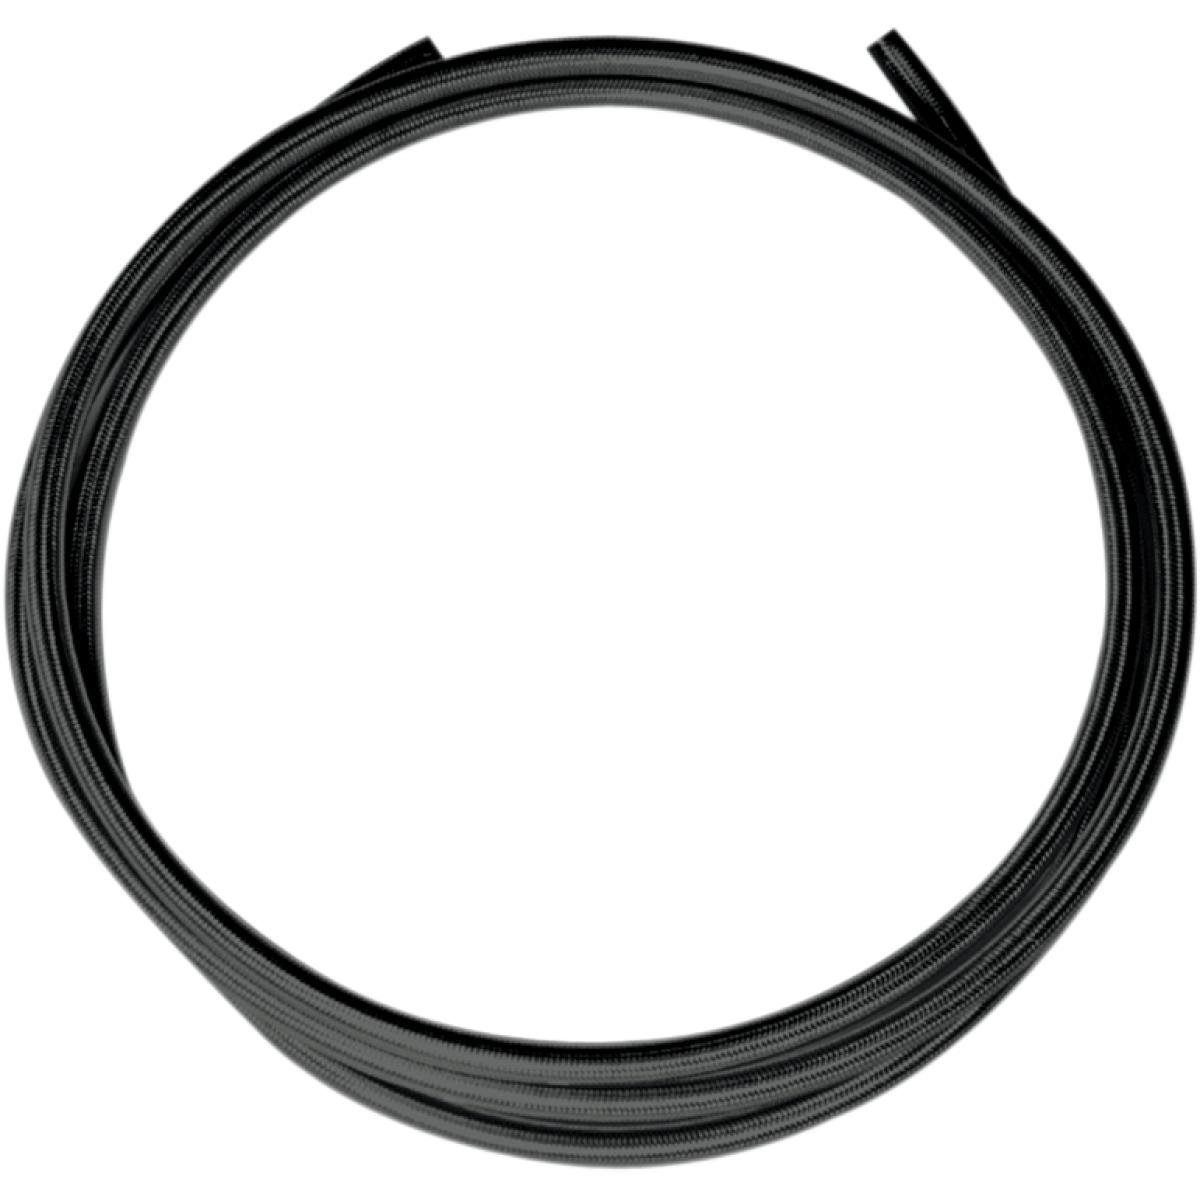 Magnum Build Your Own Brake Line - 6ft. Coated (-3) Brake Line with Vice Wrench - Black 495006A by Magnum